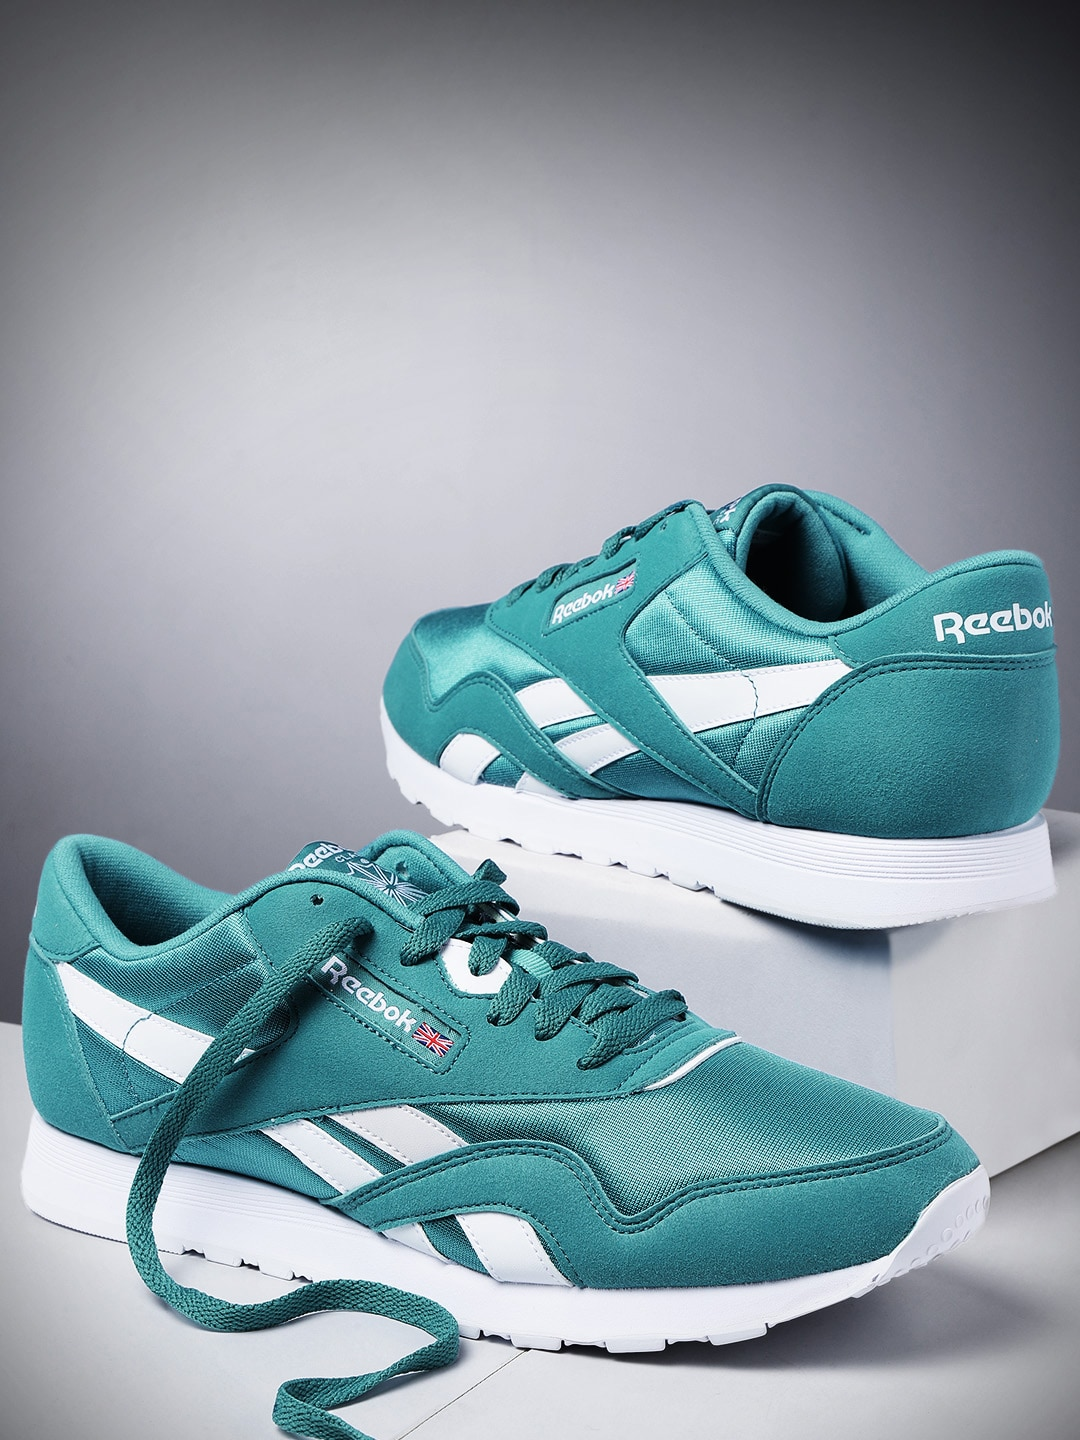 6200c8dec13 Reebok Casual Shoes - Buy Reebok Casual Shoes Online in India